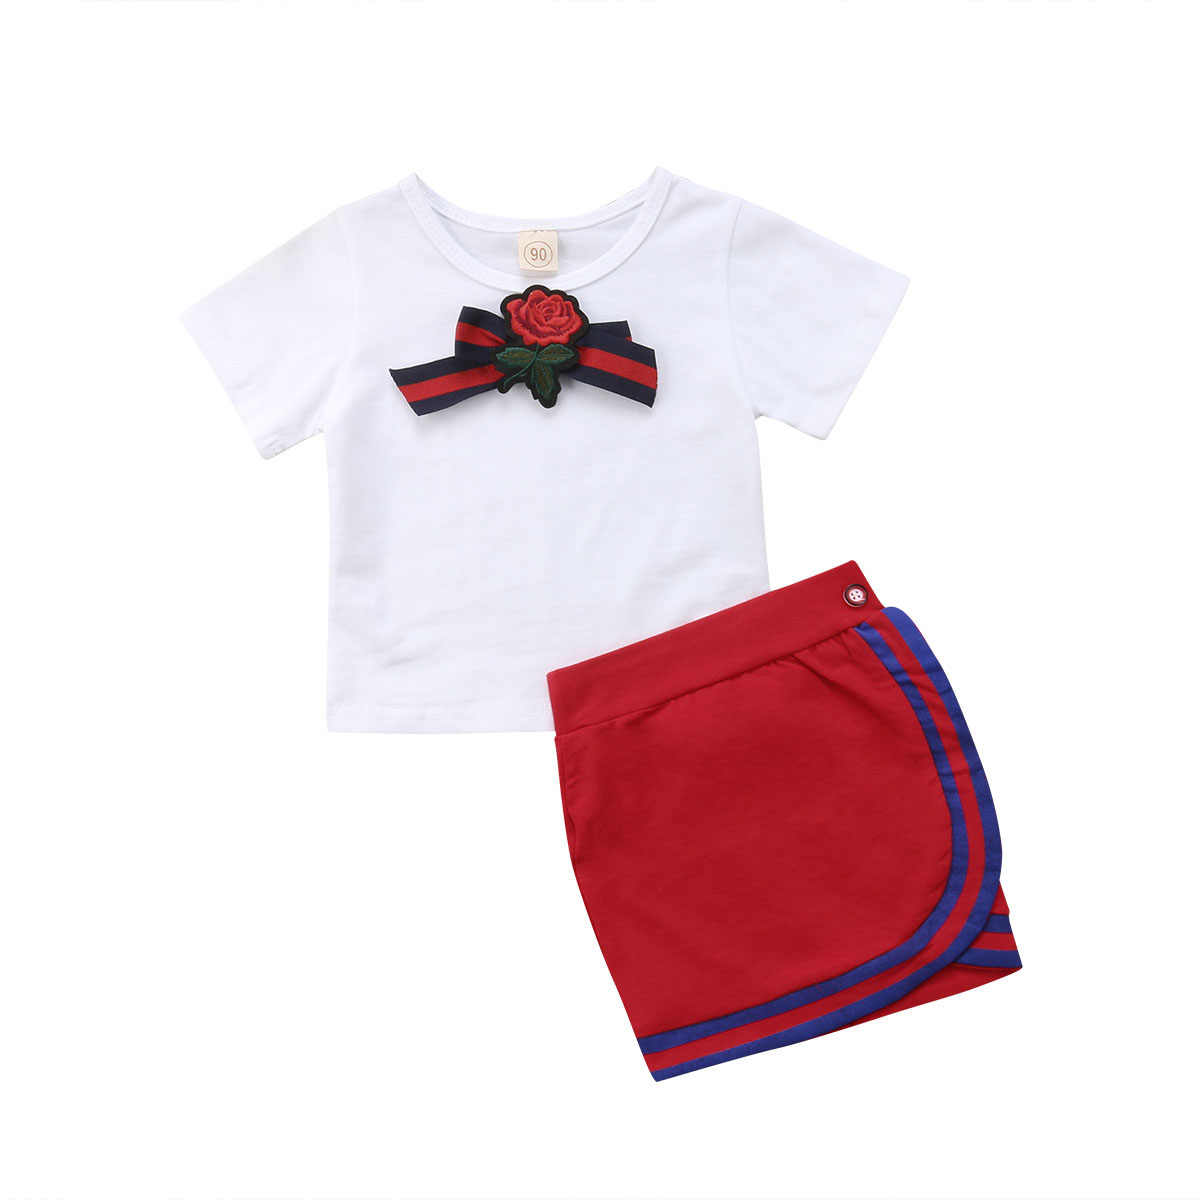 a330b48d0ee Lovely Kids Baby Girls Bow Tie Embroidery Flower Tops Short Sleeve T-shirt  Skirts Outfits